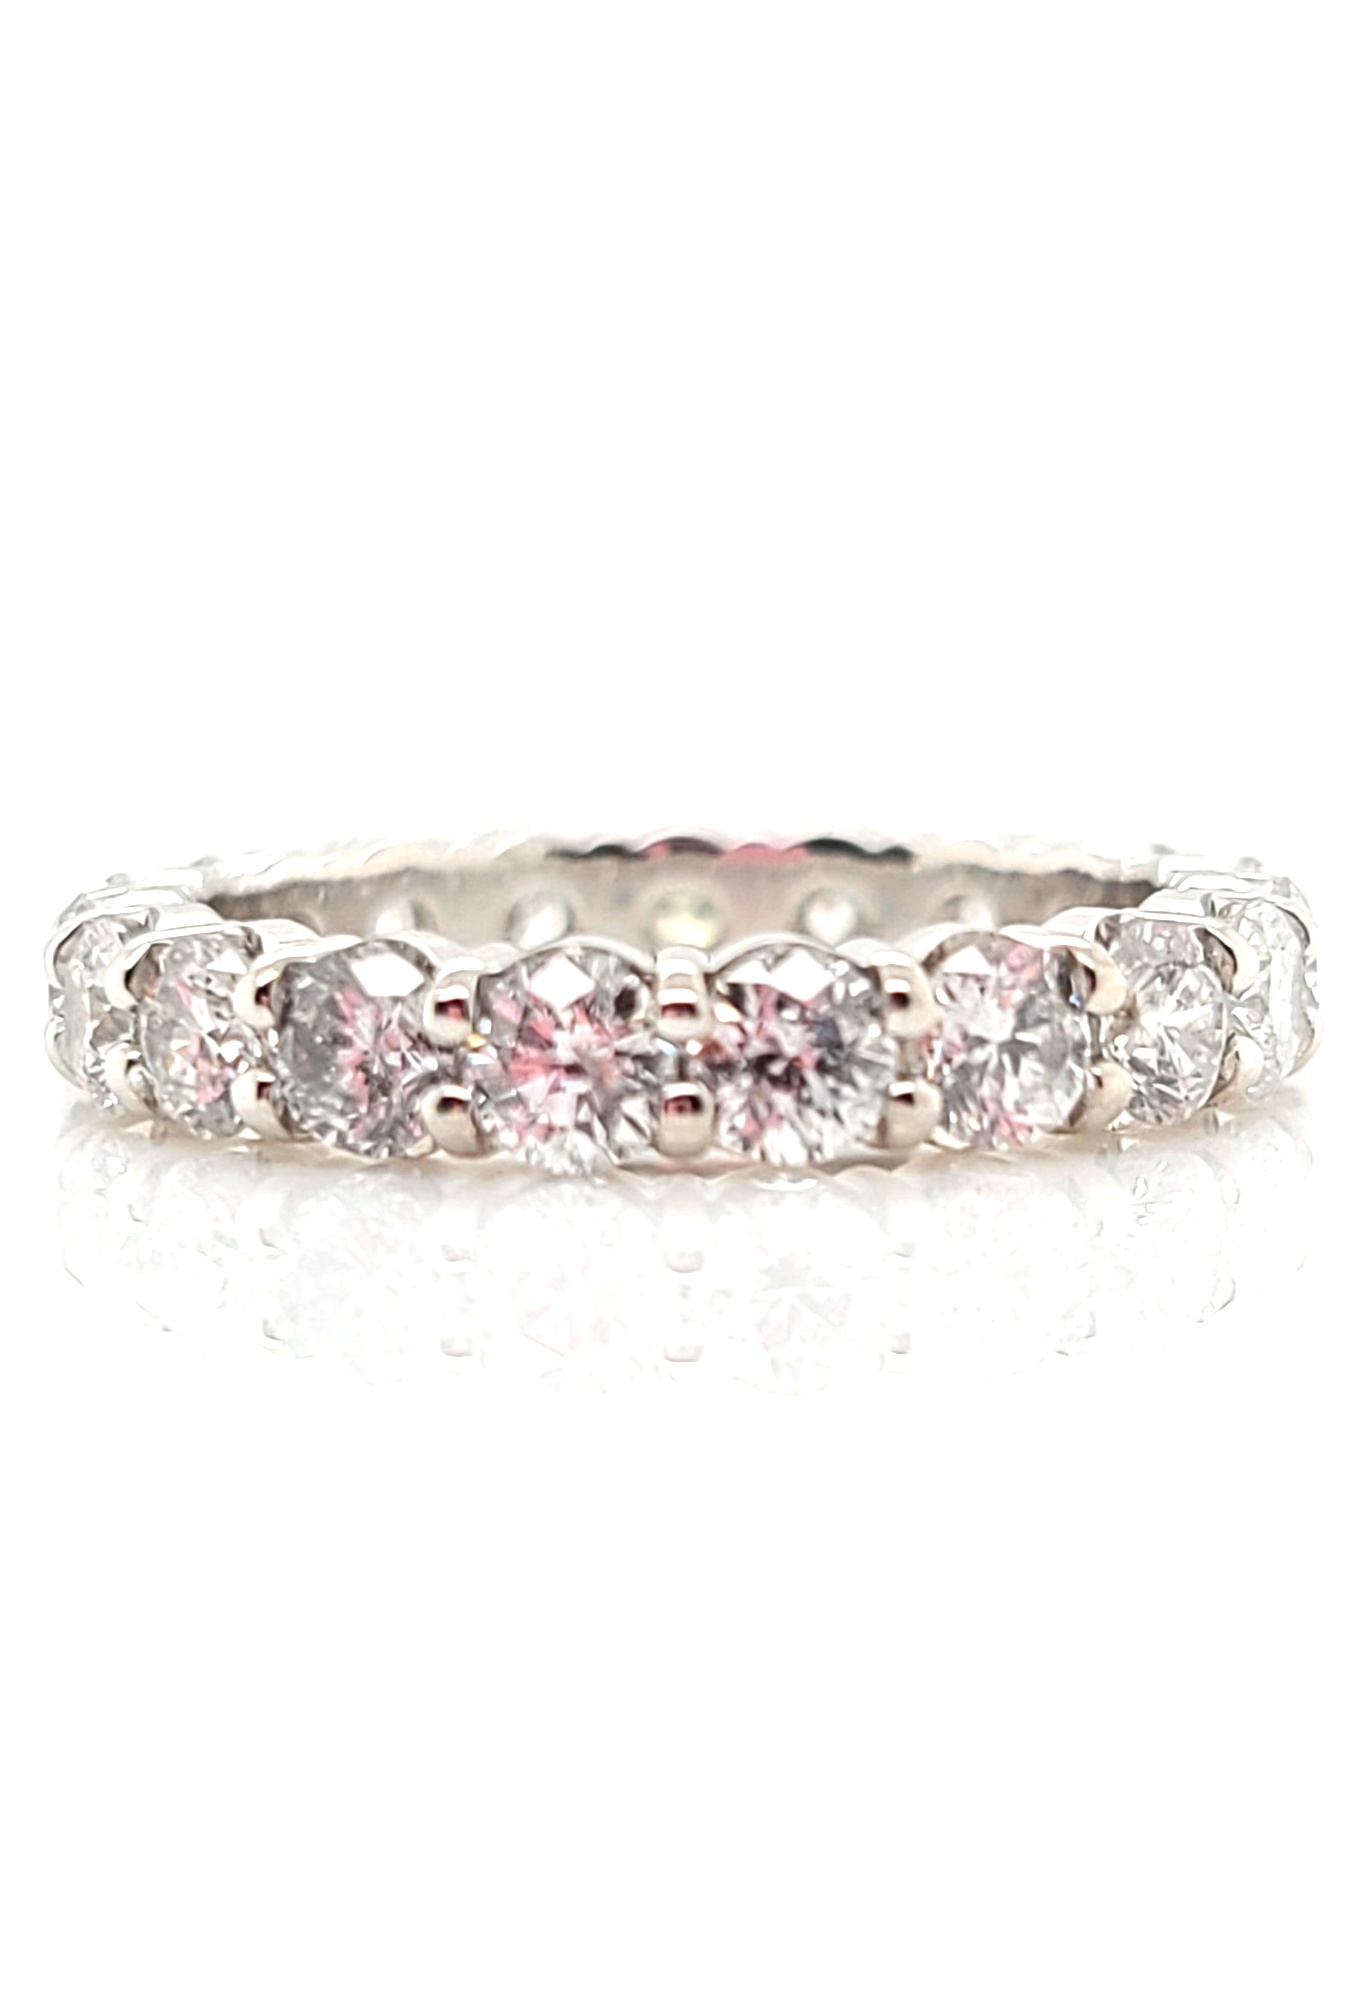 14kt wg Eternity band 2.65cttw E, SI1-SI2